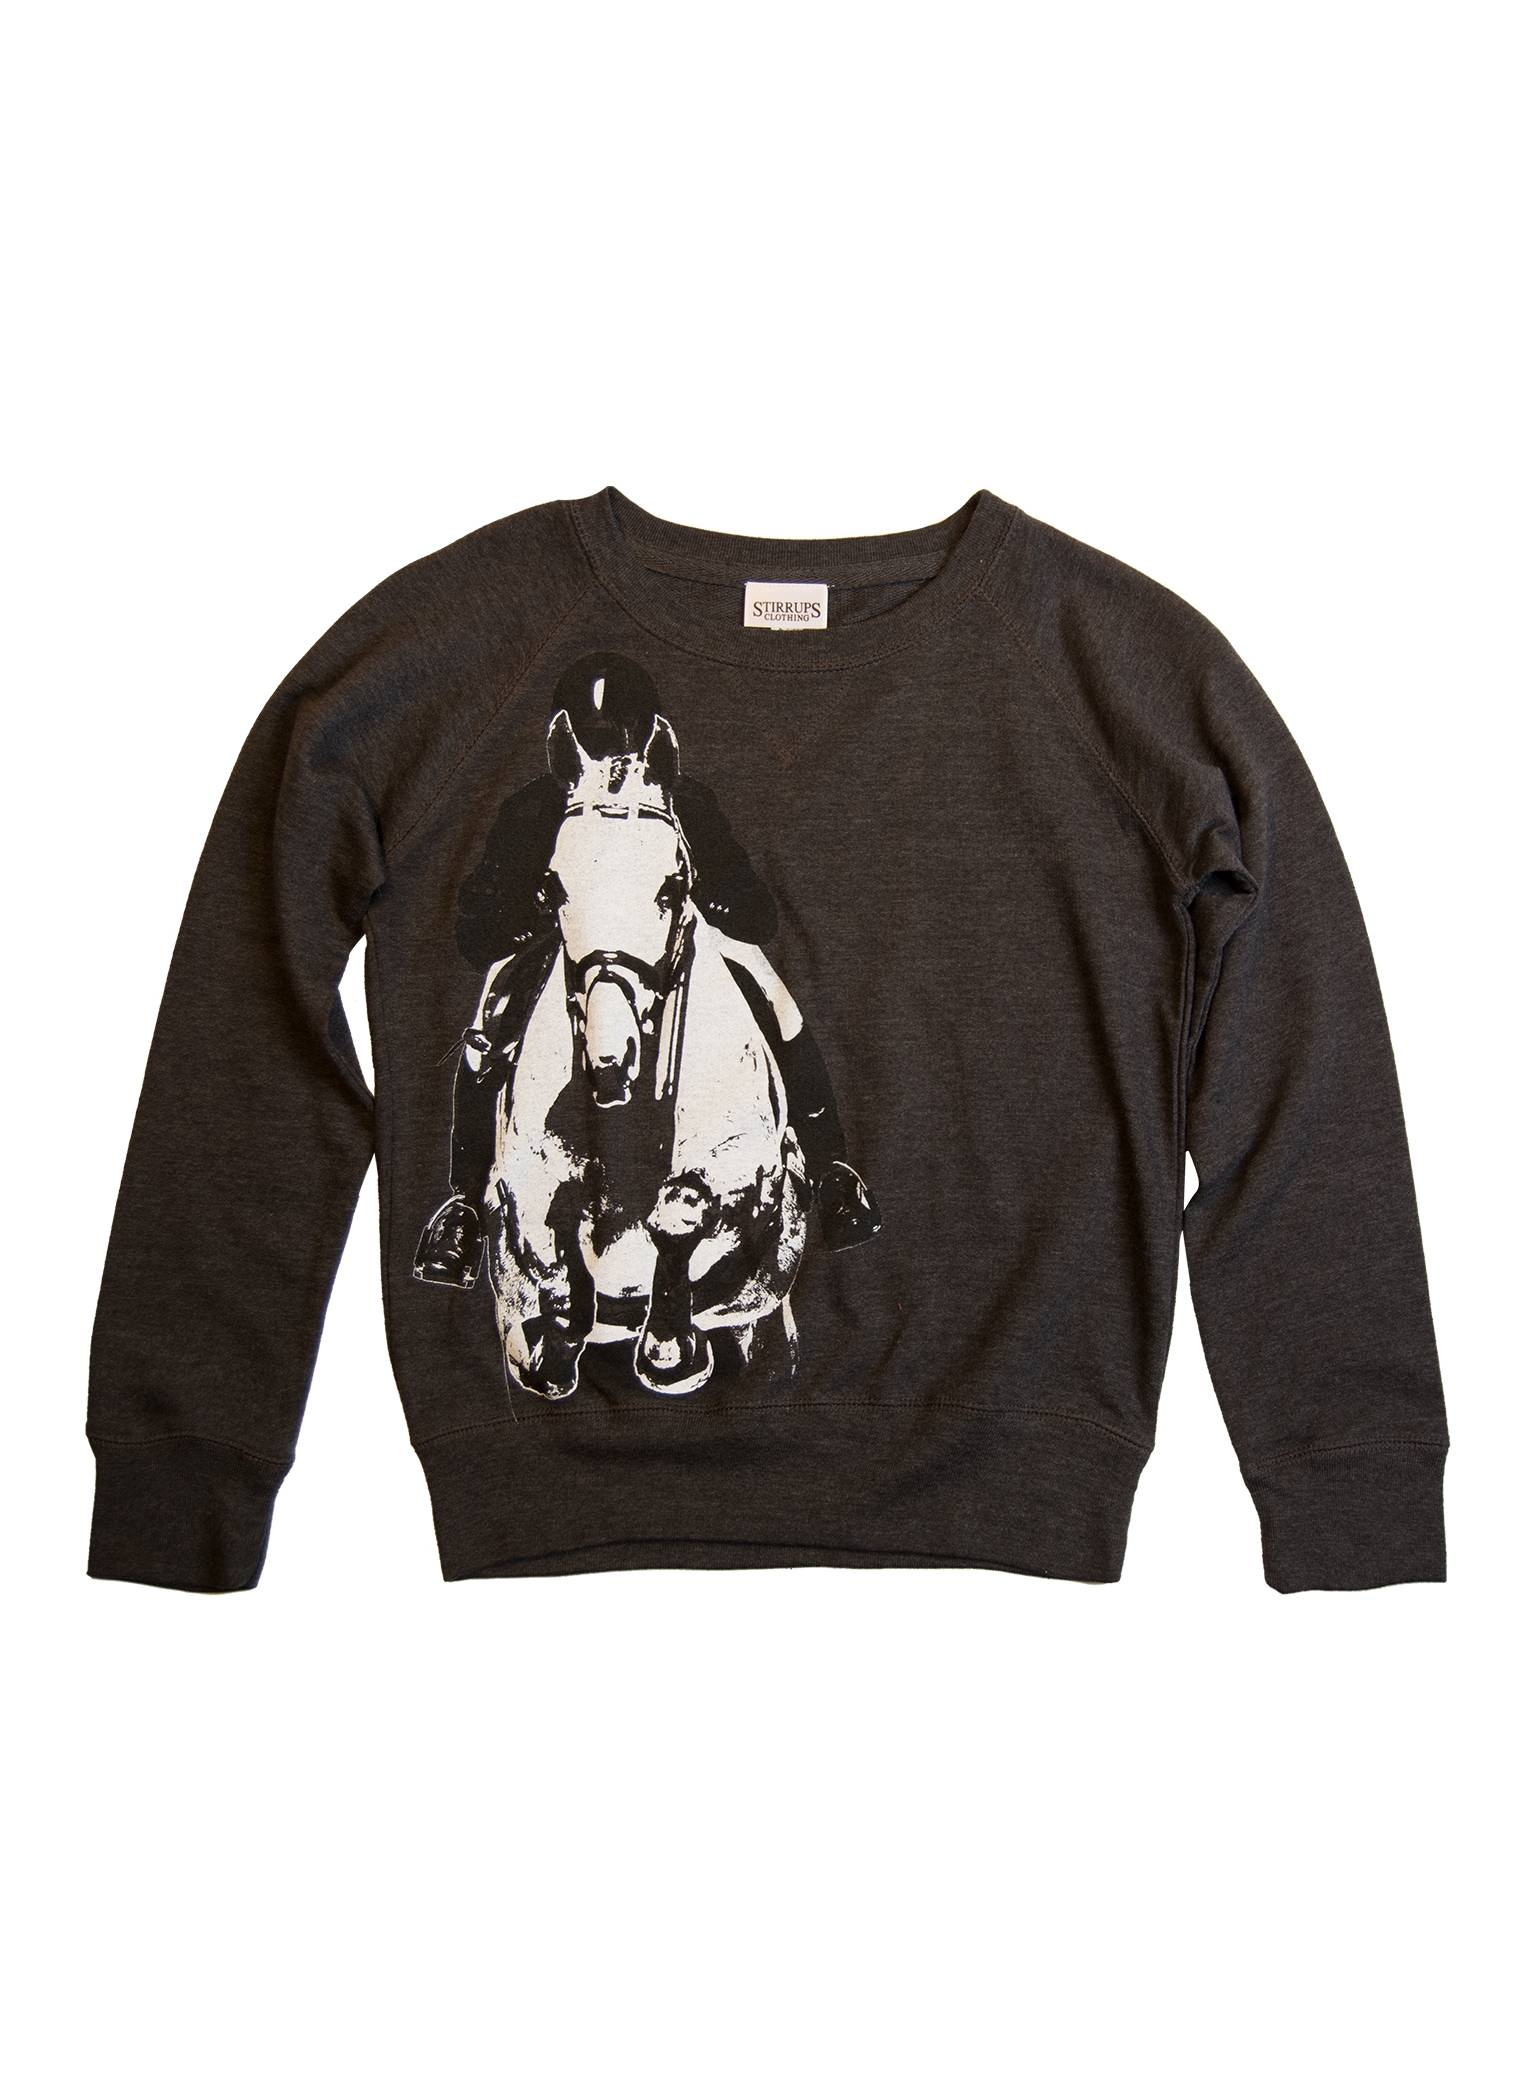 Stirrups Classic Jumper Terry Crewneck Sweatshirt - Kids